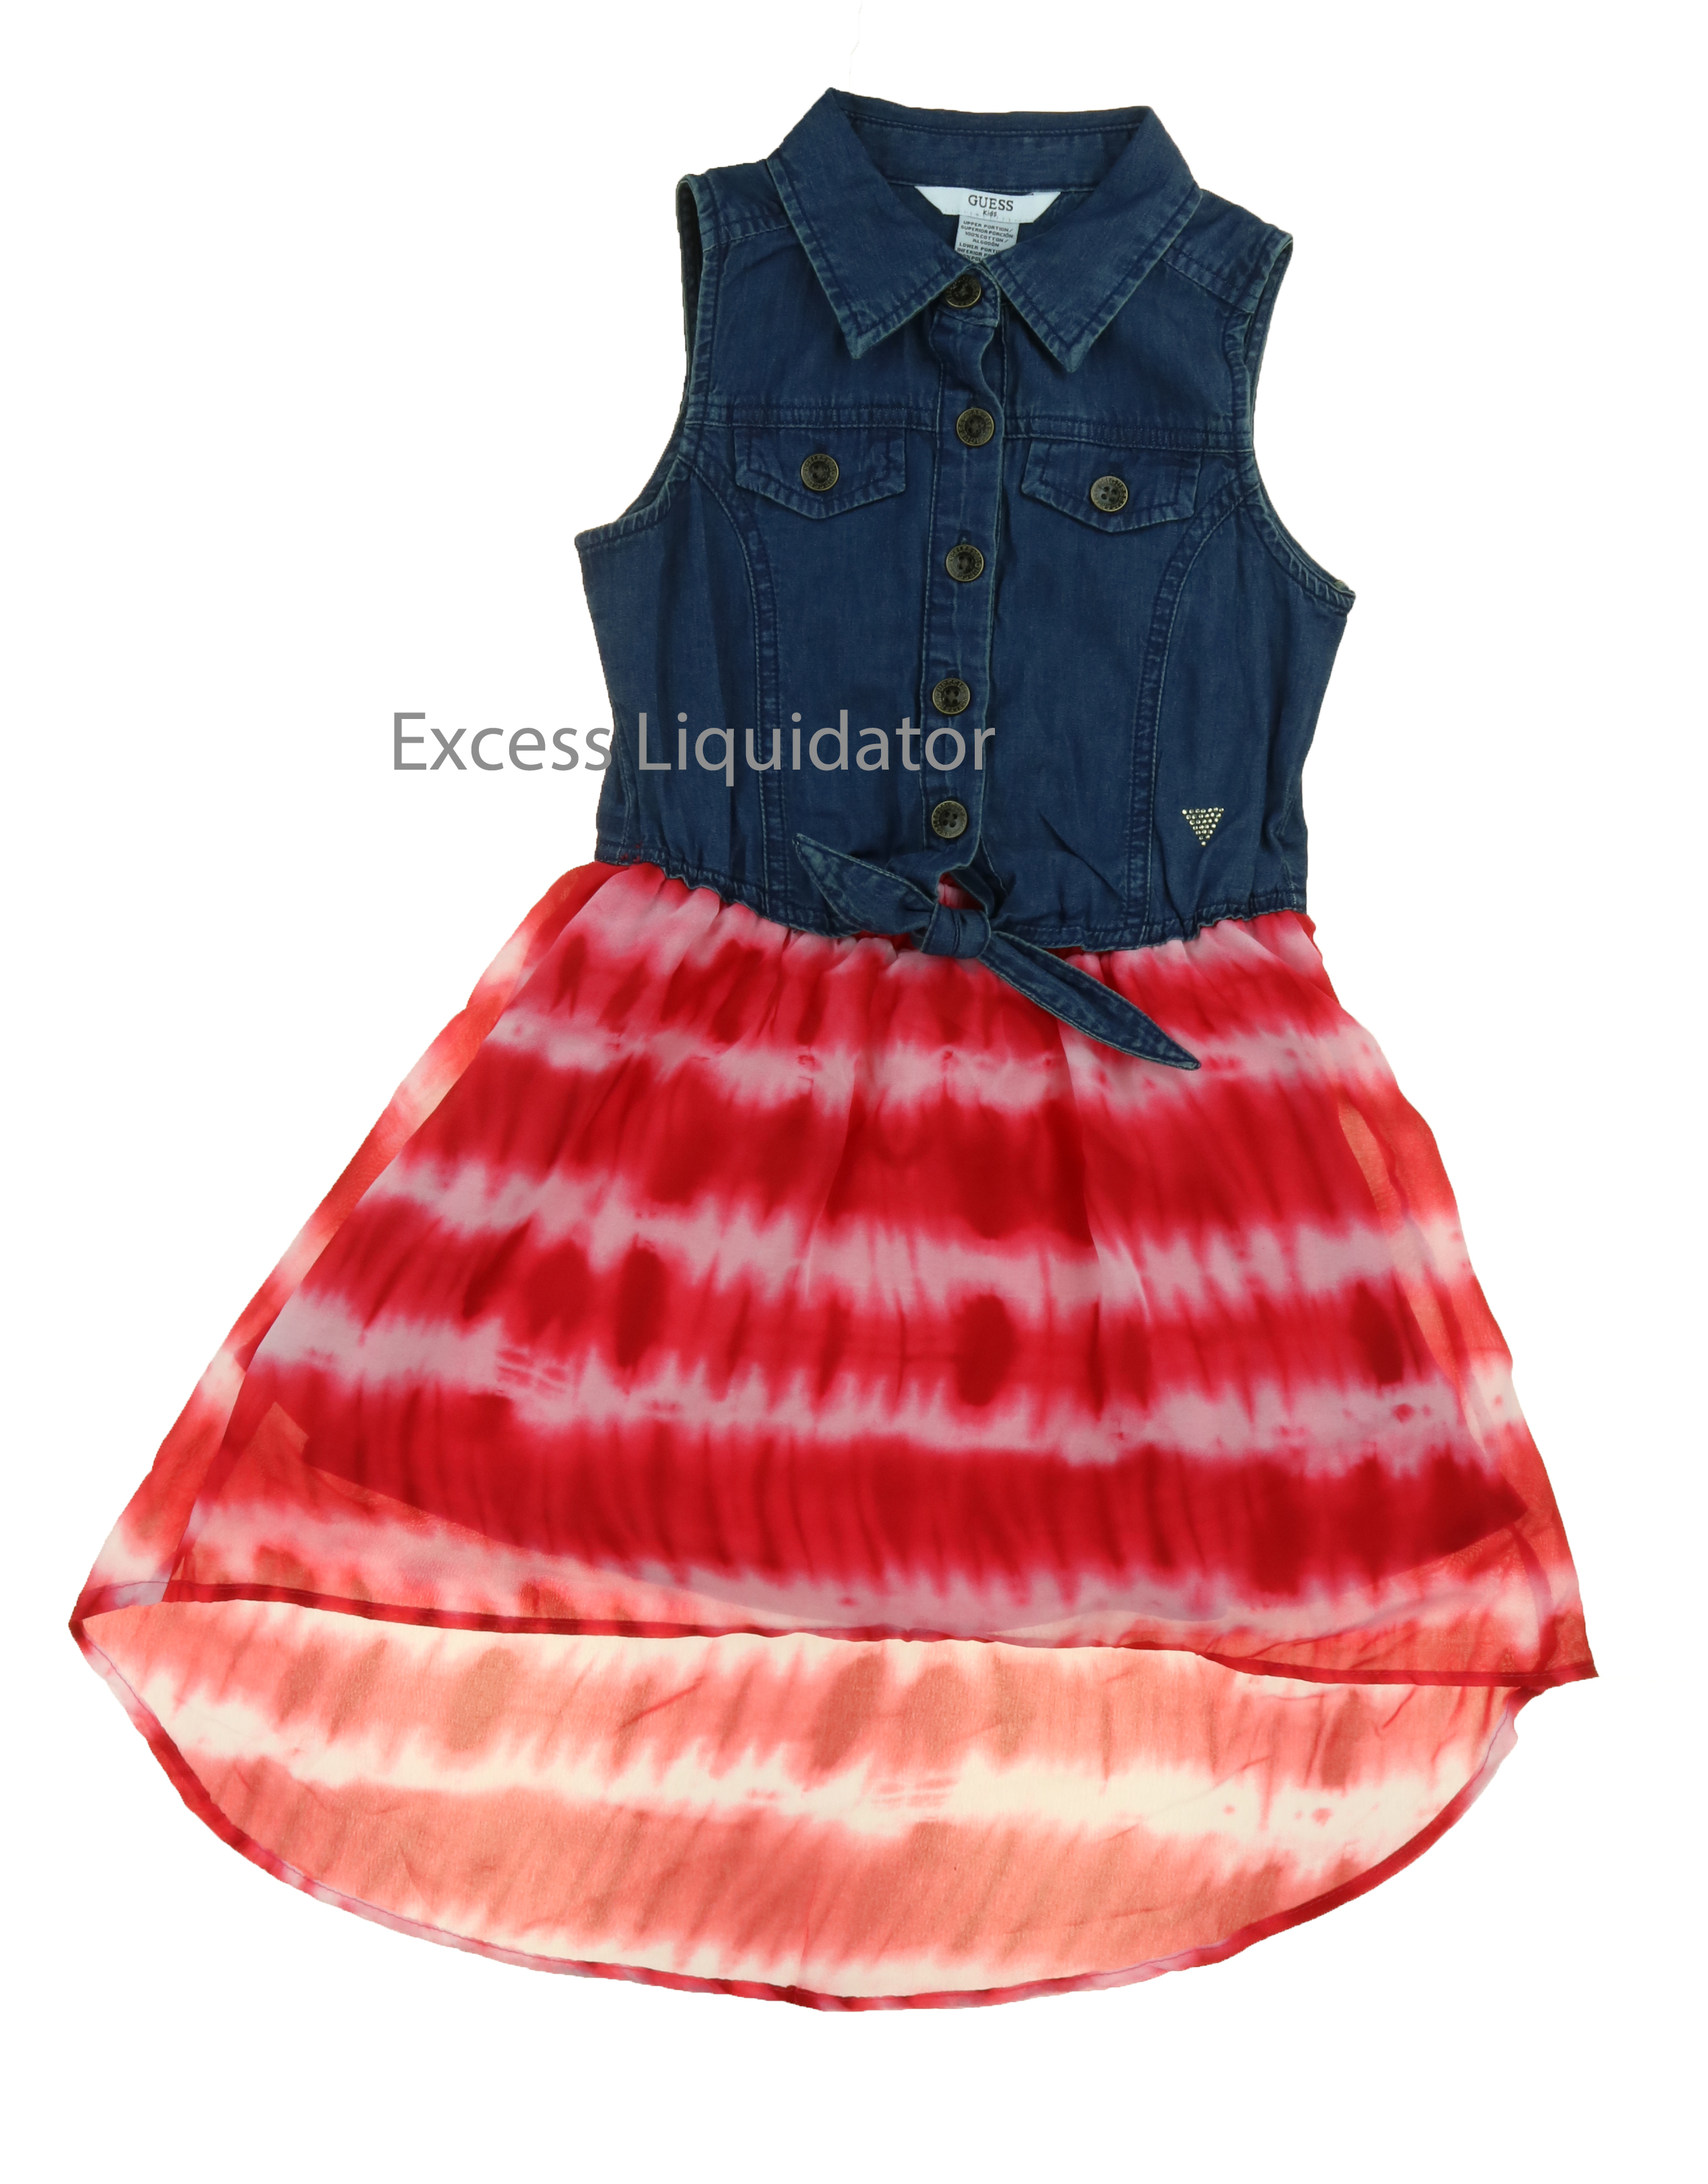 Guess Jeans Kids Girls Patterned Denim and Lace Dresses